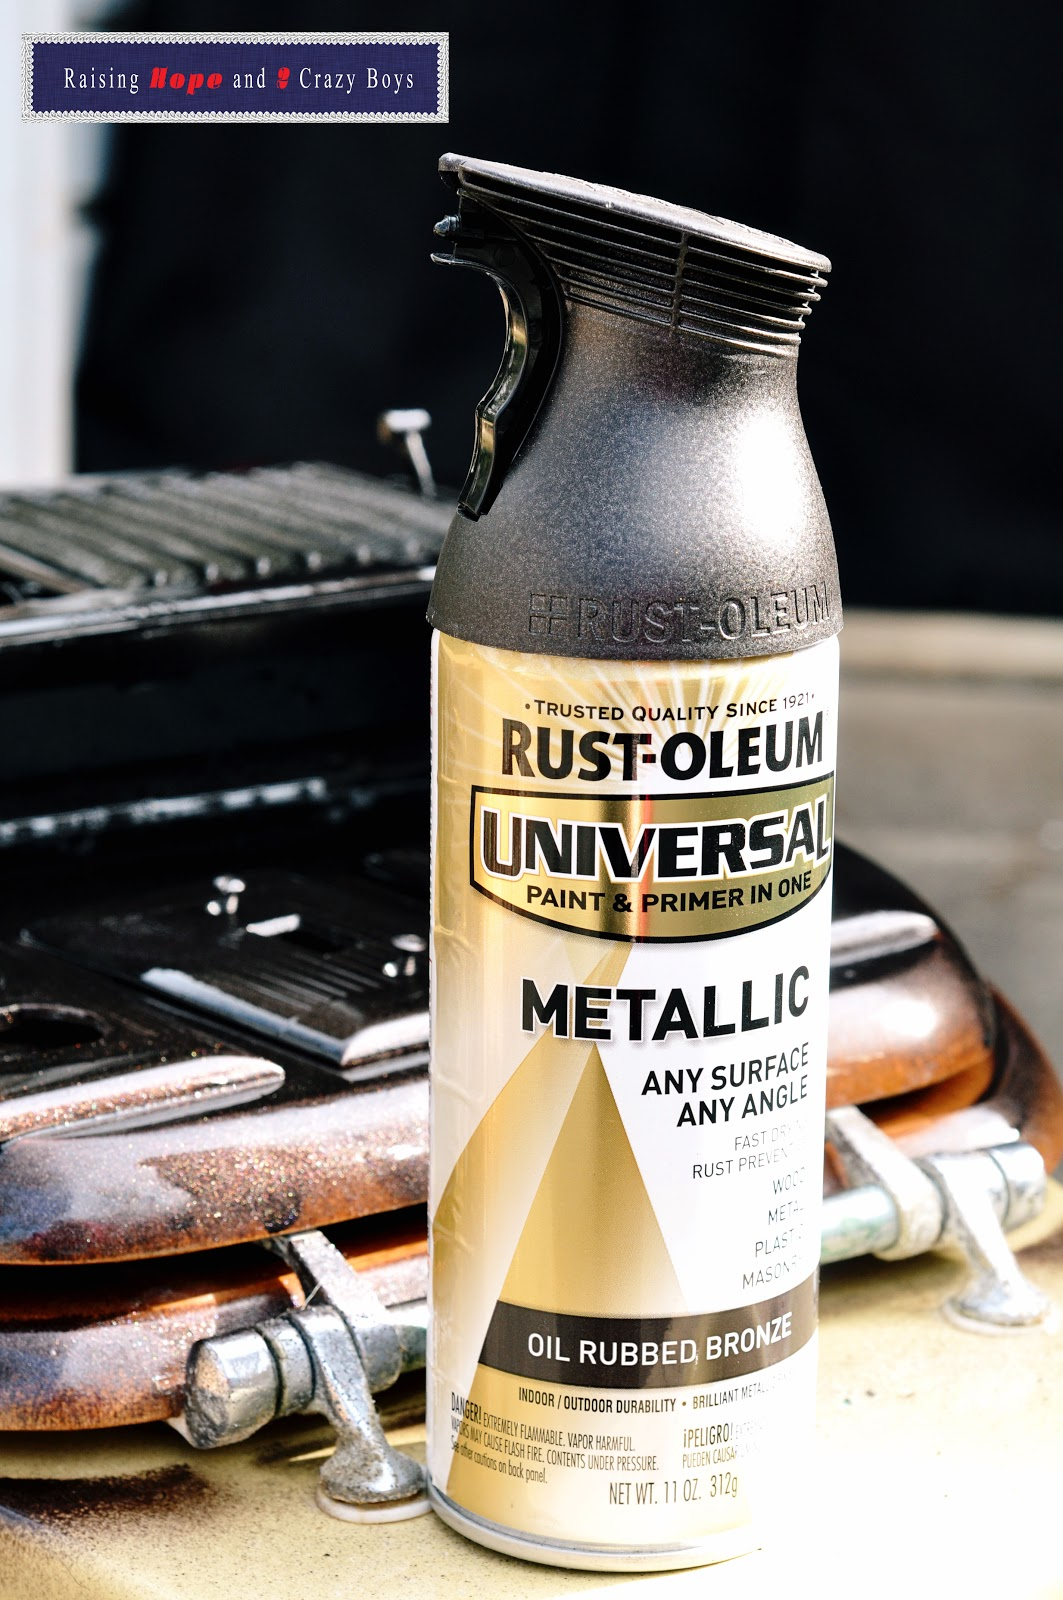 rust oleum metallic spray paint enter rust oleum 39 s universal. Black Bedroom Furniture Sets. Home Design Ideas